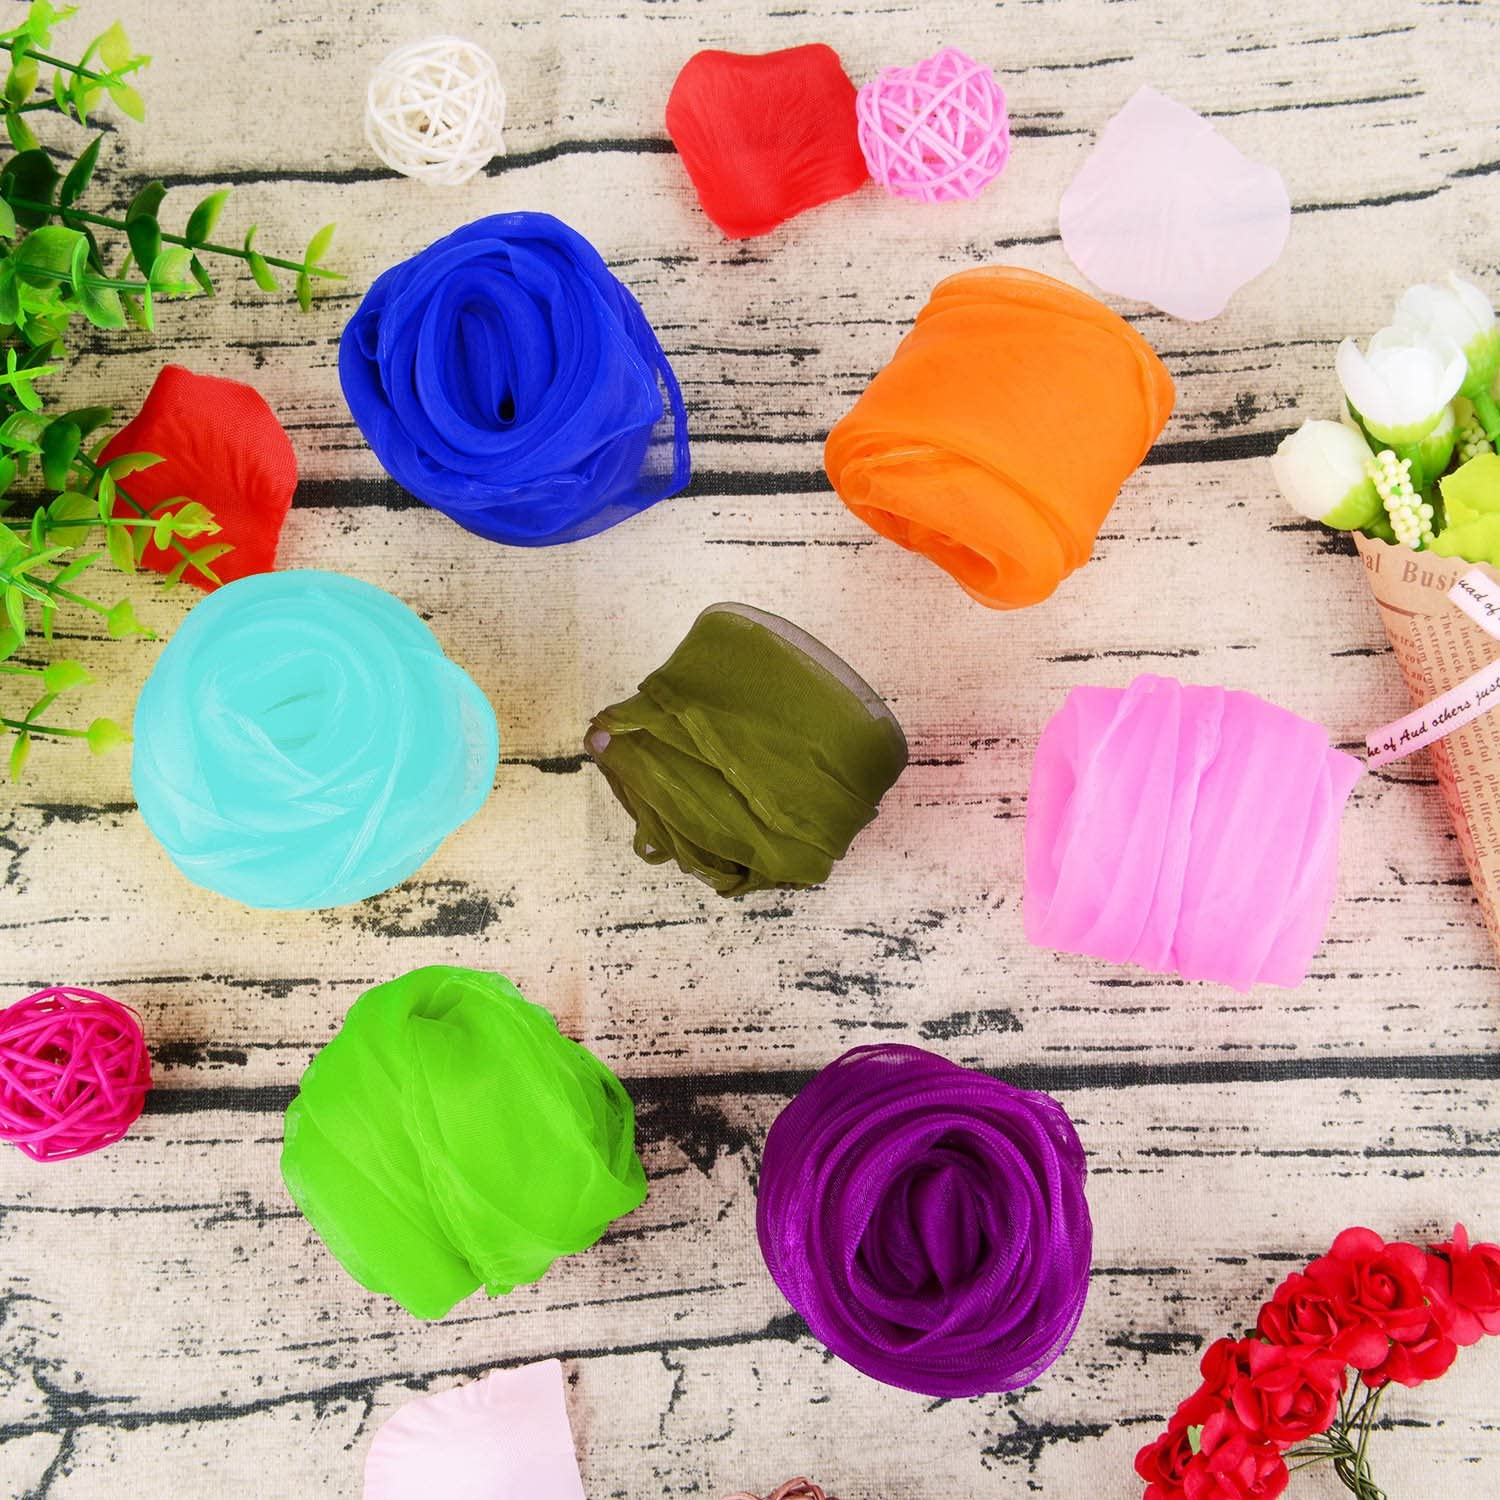 Shappy 28 Pieces Dance Scarves Square Juggling Scarf Magic Scarves, 24 by 24 Inches (14 Colors): Toys & Games